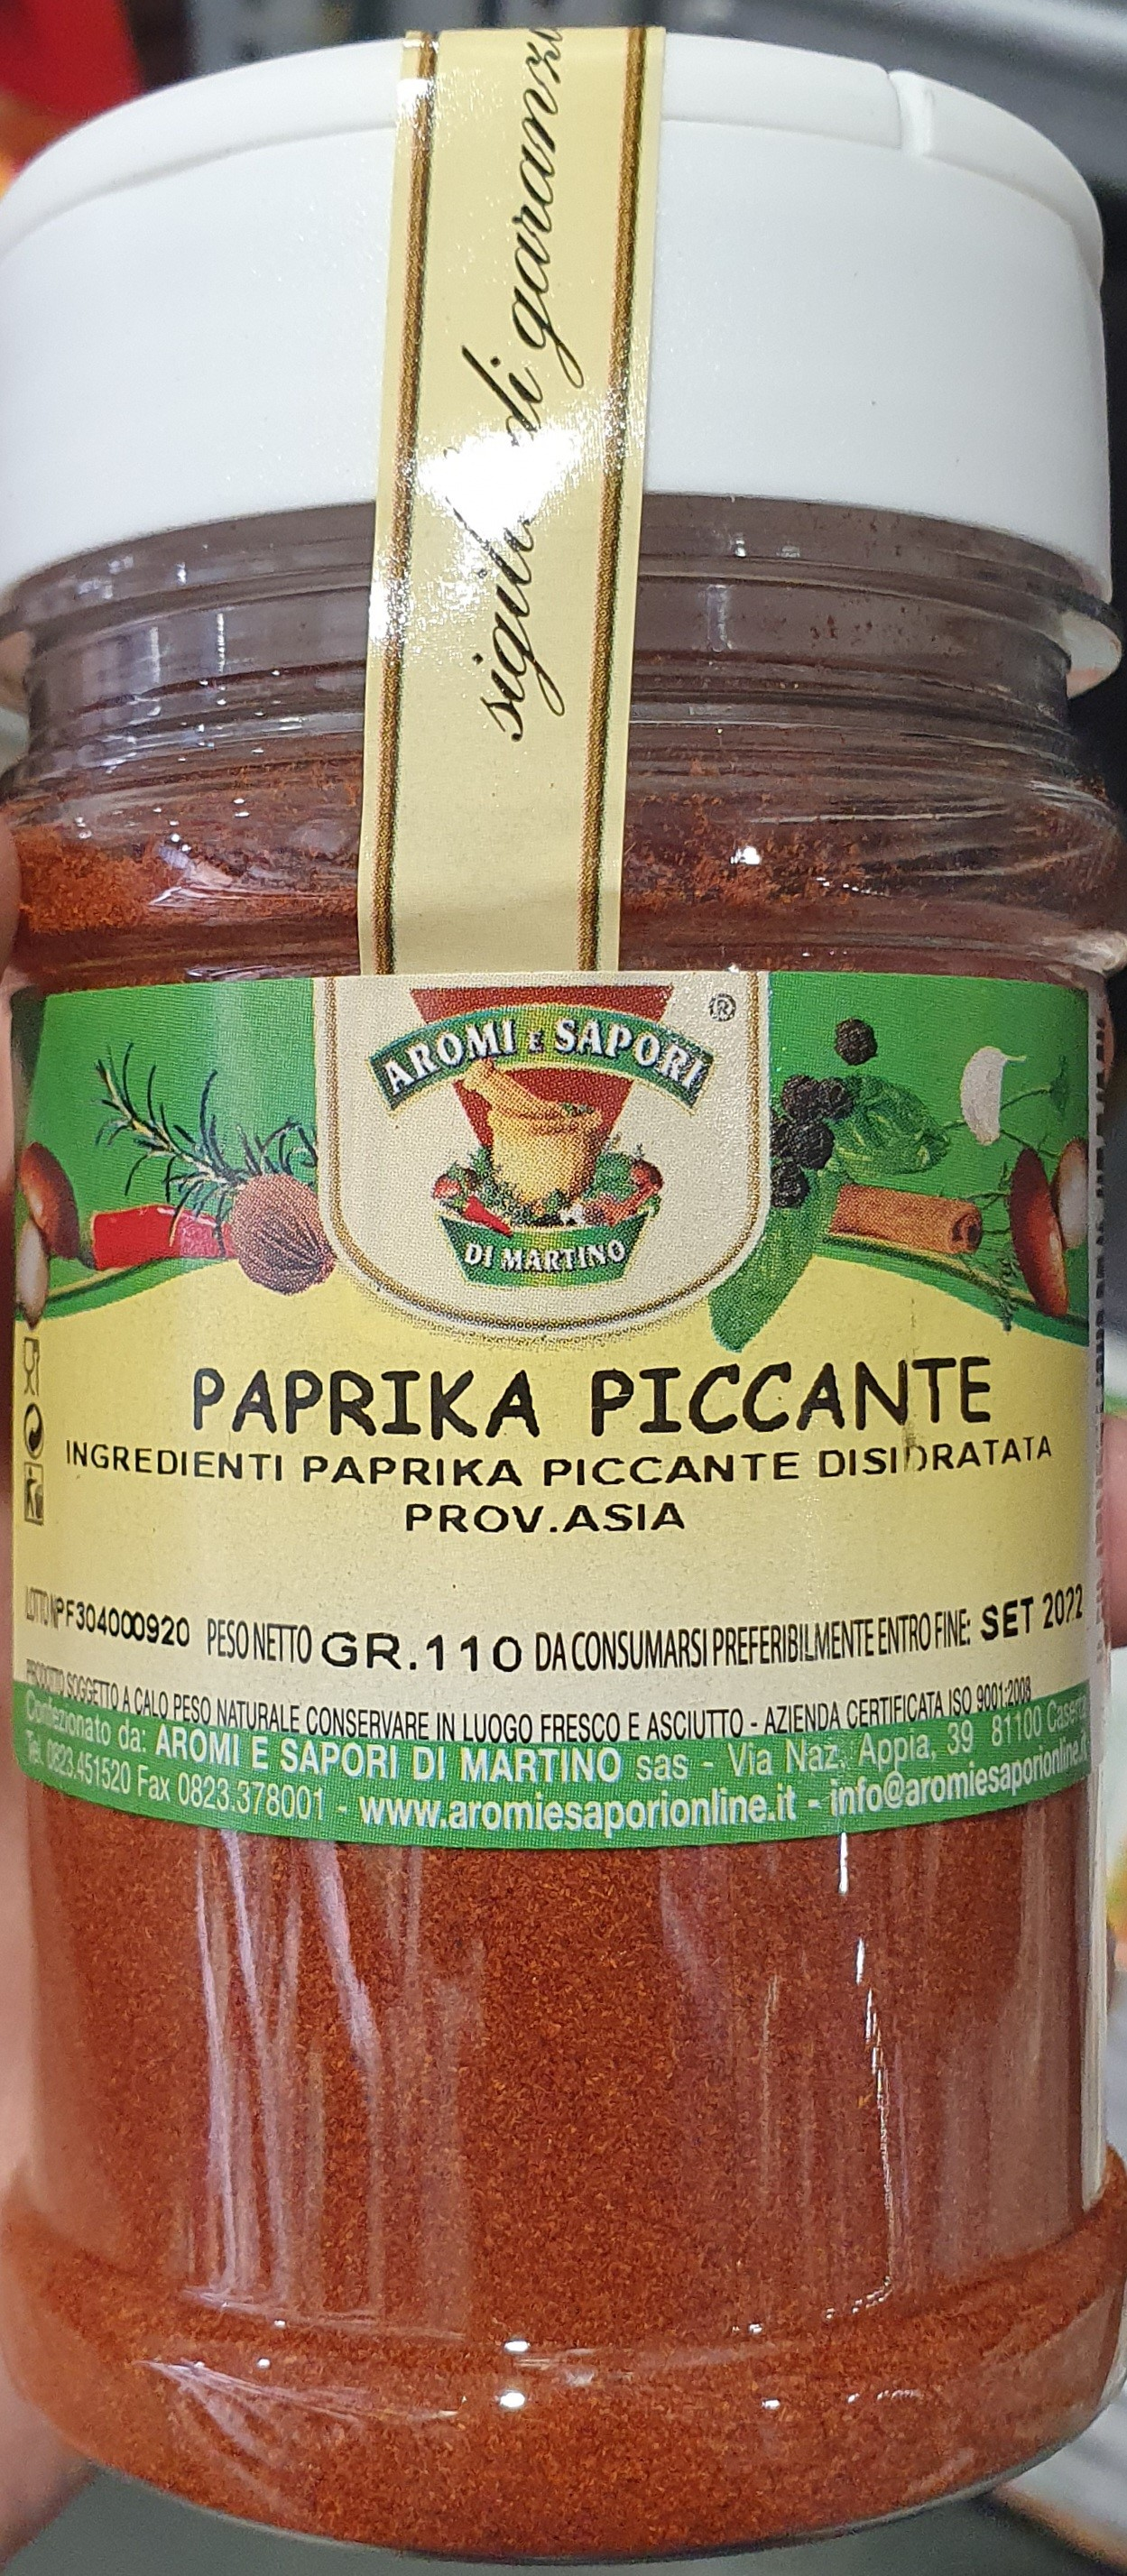 Hot Paprika 130gr (4.58 oz). Imported from Italy